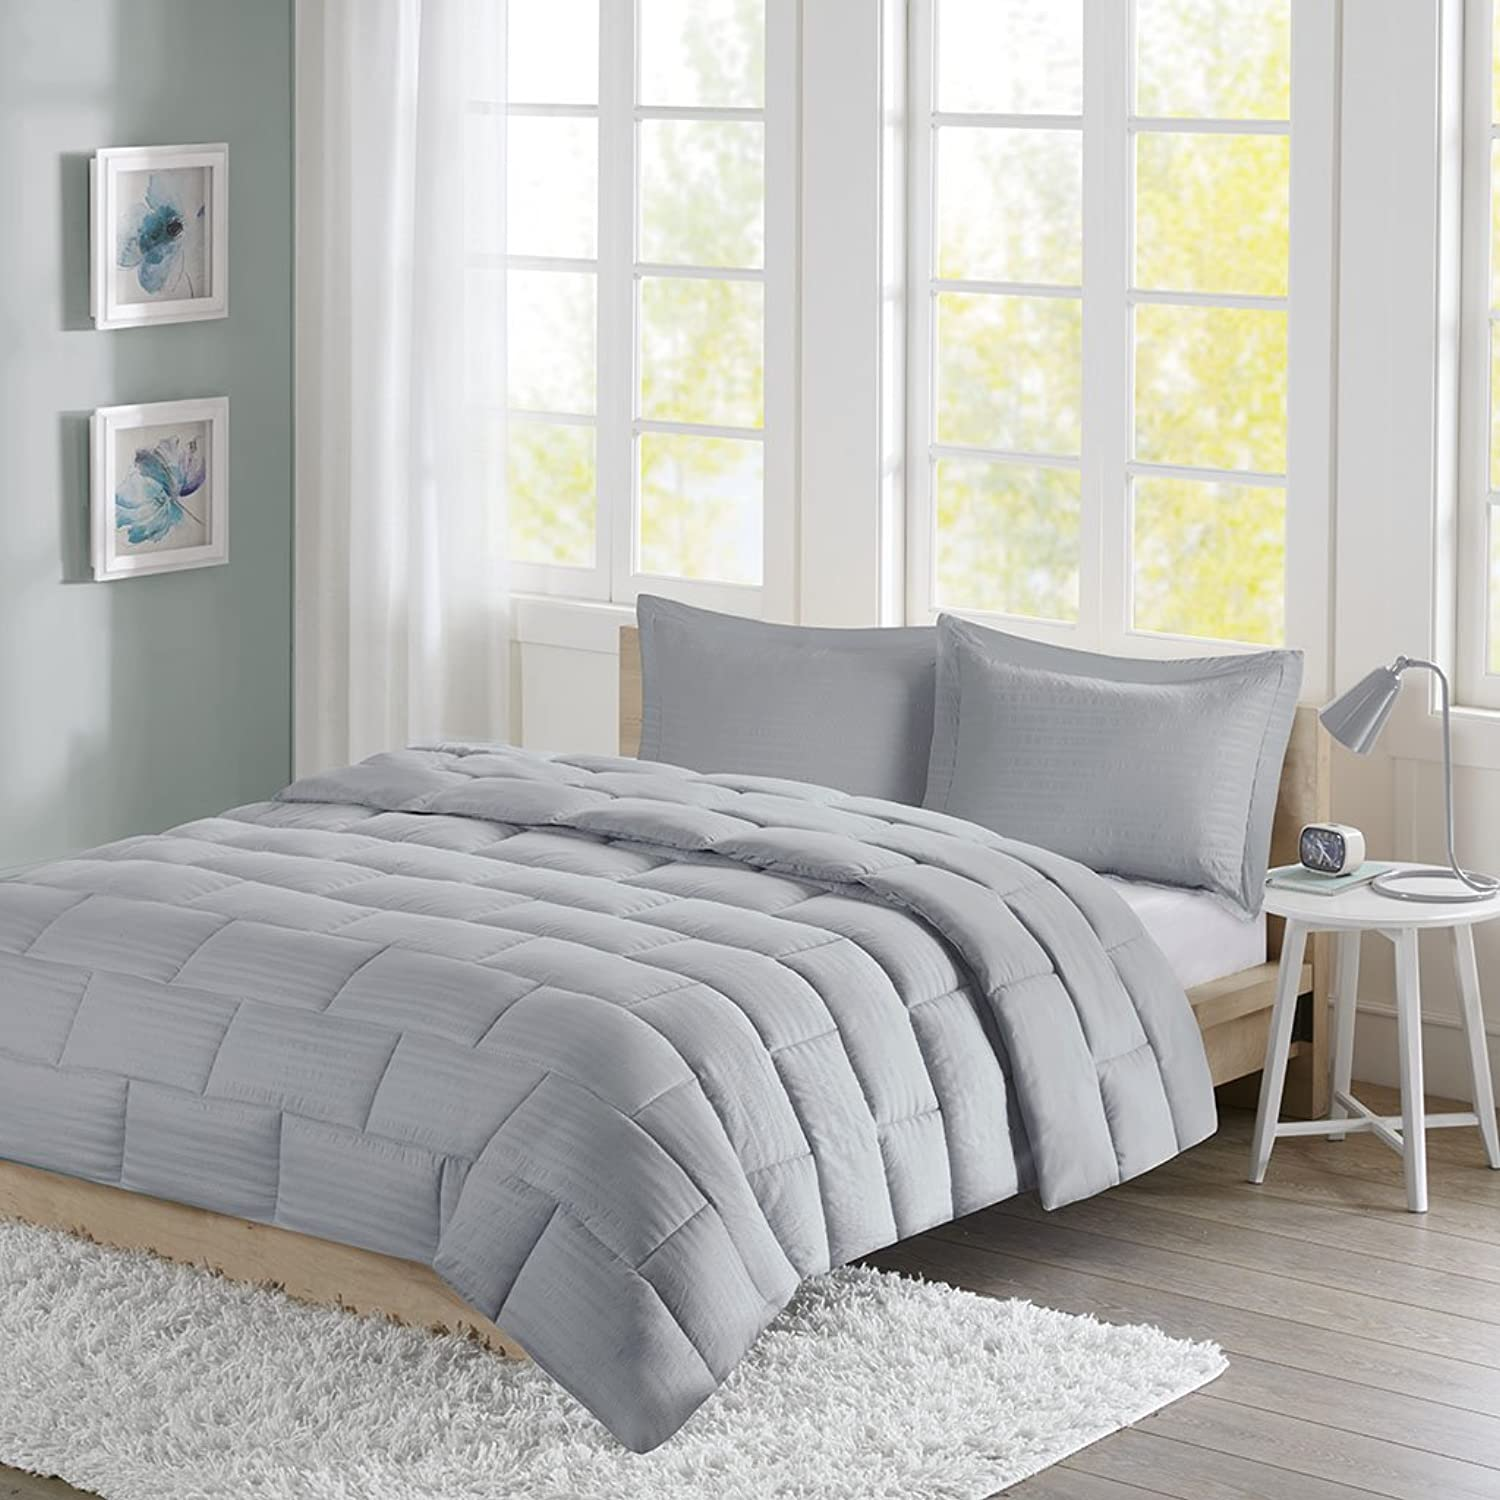 Intelligent Design Avery Seersucker Down Alternative Comforter Mini Set Full Queen Grey